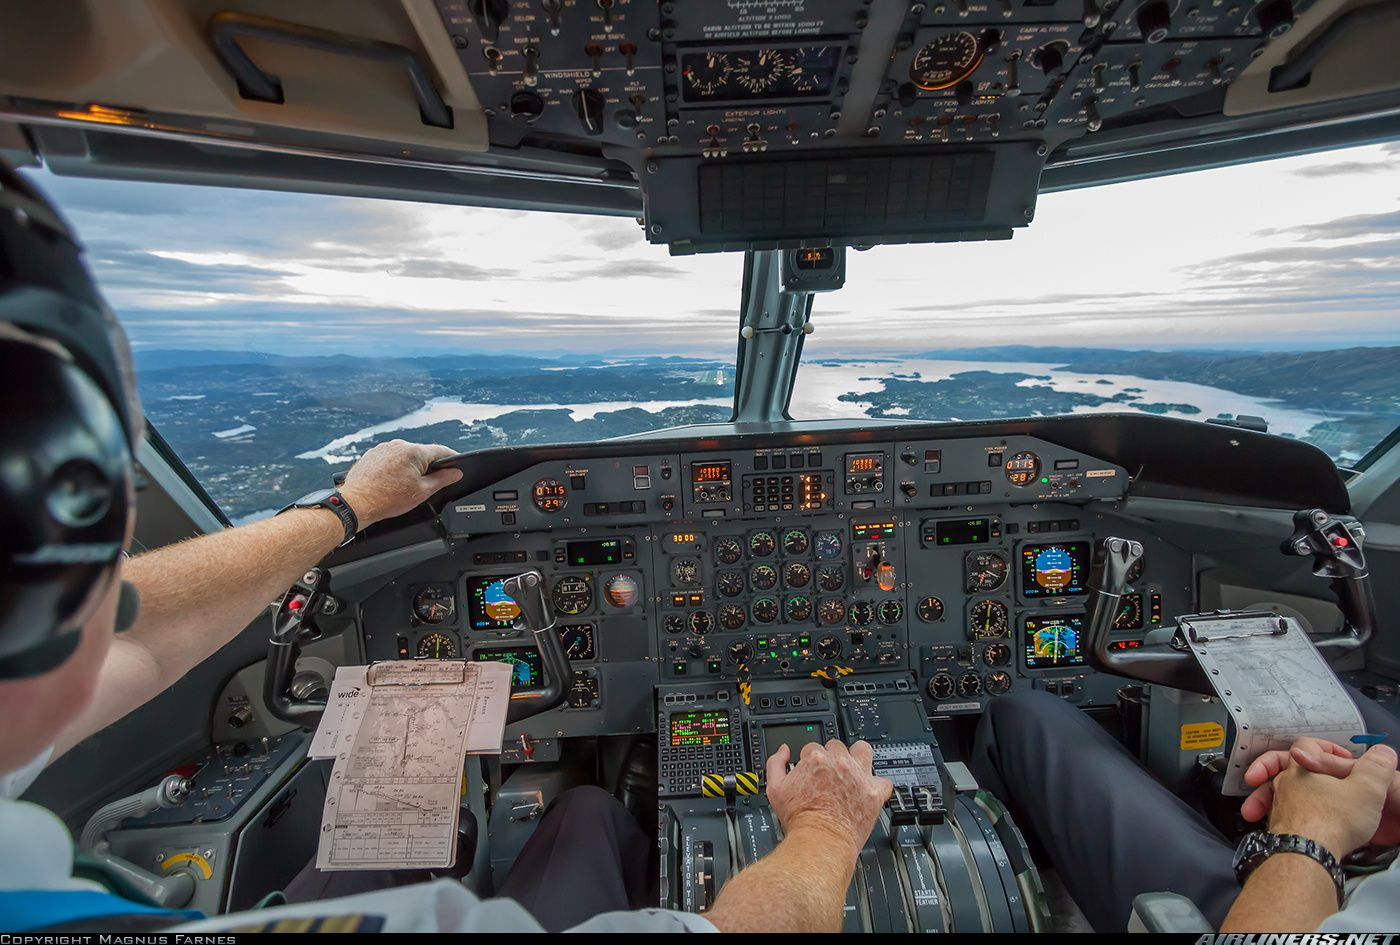 The view from the flight deck of a Dash 8 from Widerøe on